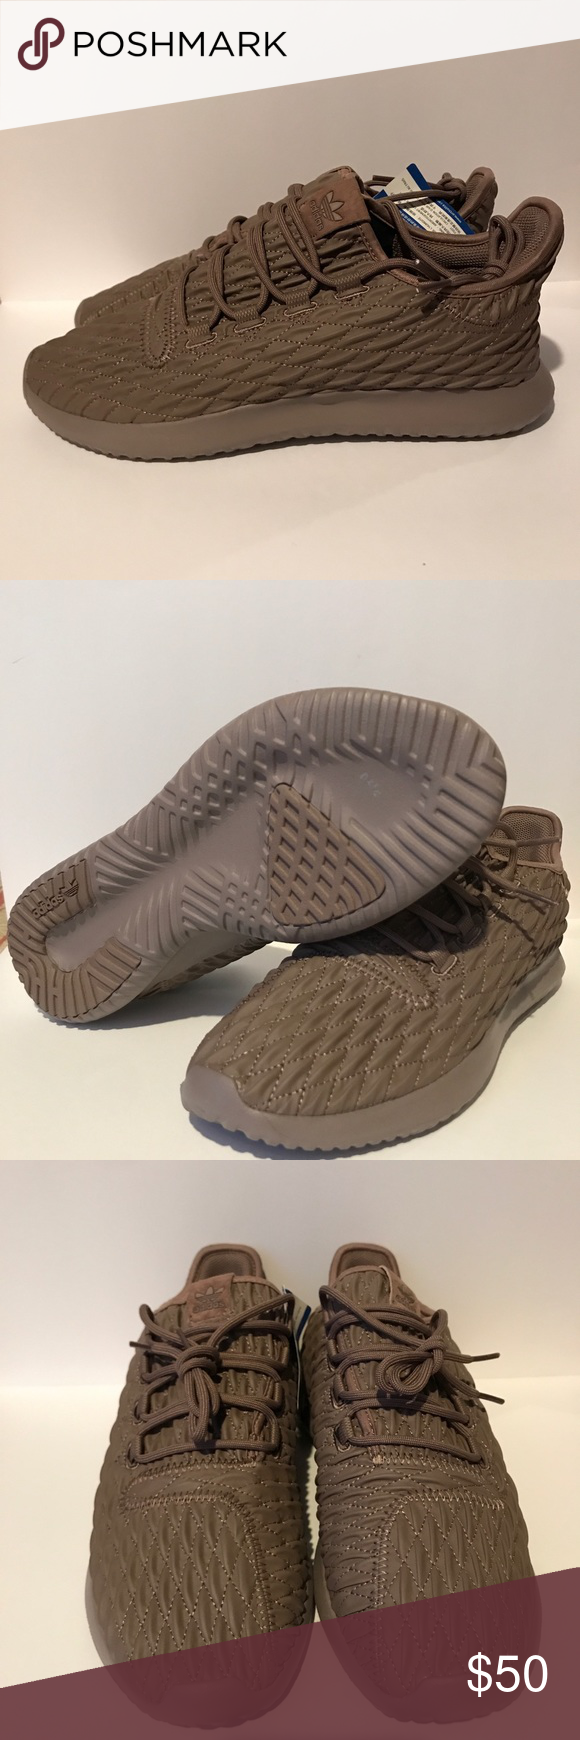 f724260e4862 New Adidas Tubular Shadow Trace Brown size 10.5 Brand New Adidas just come  with out the BOX. NO BOX INCLUDED.... Size 10.5 US adidas Shoes Athletic  Shoes